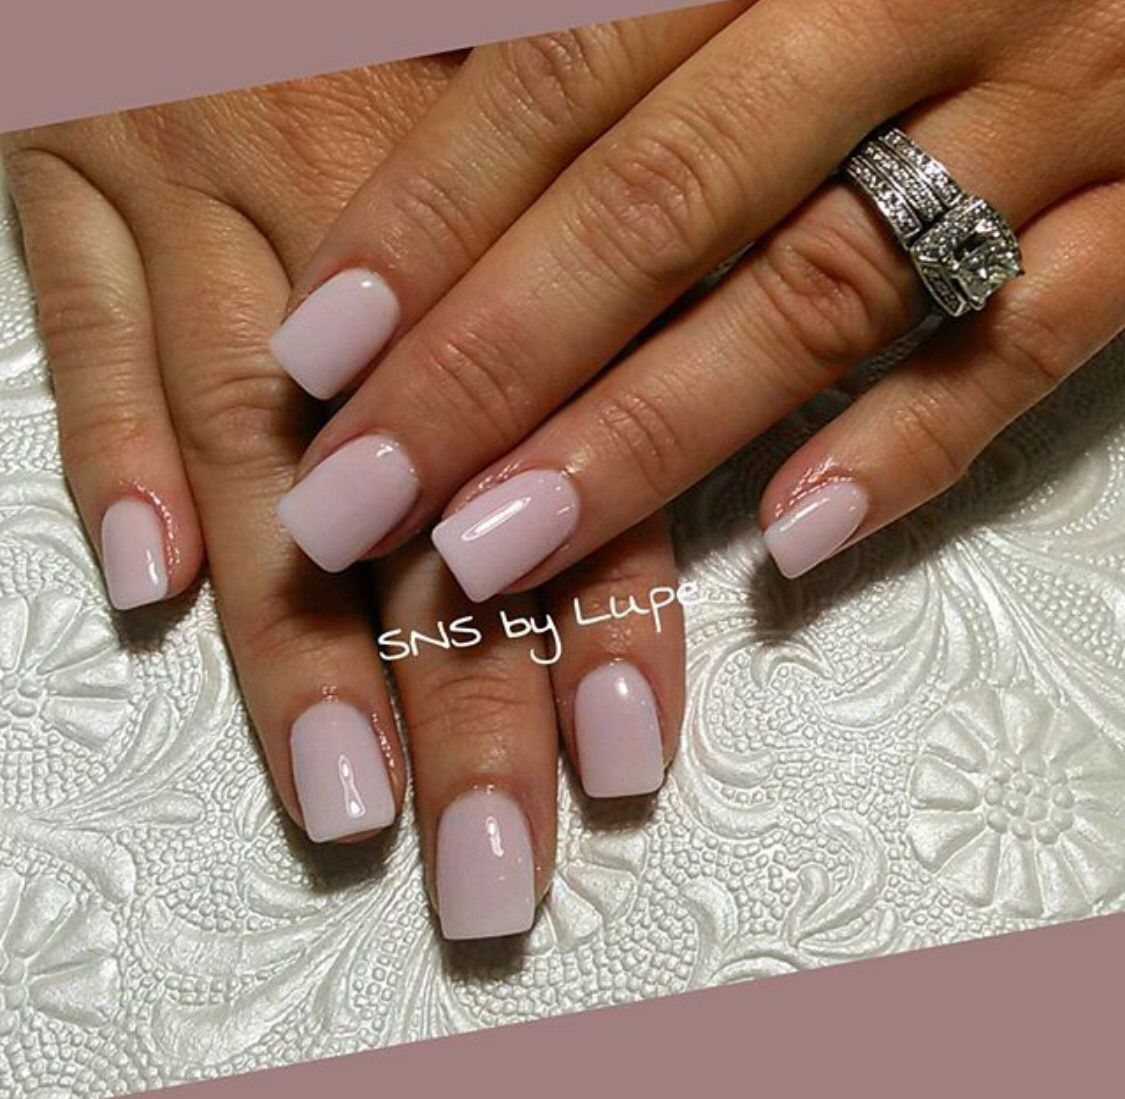 SNS nails in nude collection by Lupe ! | Nails | Pinterest | Sns ...